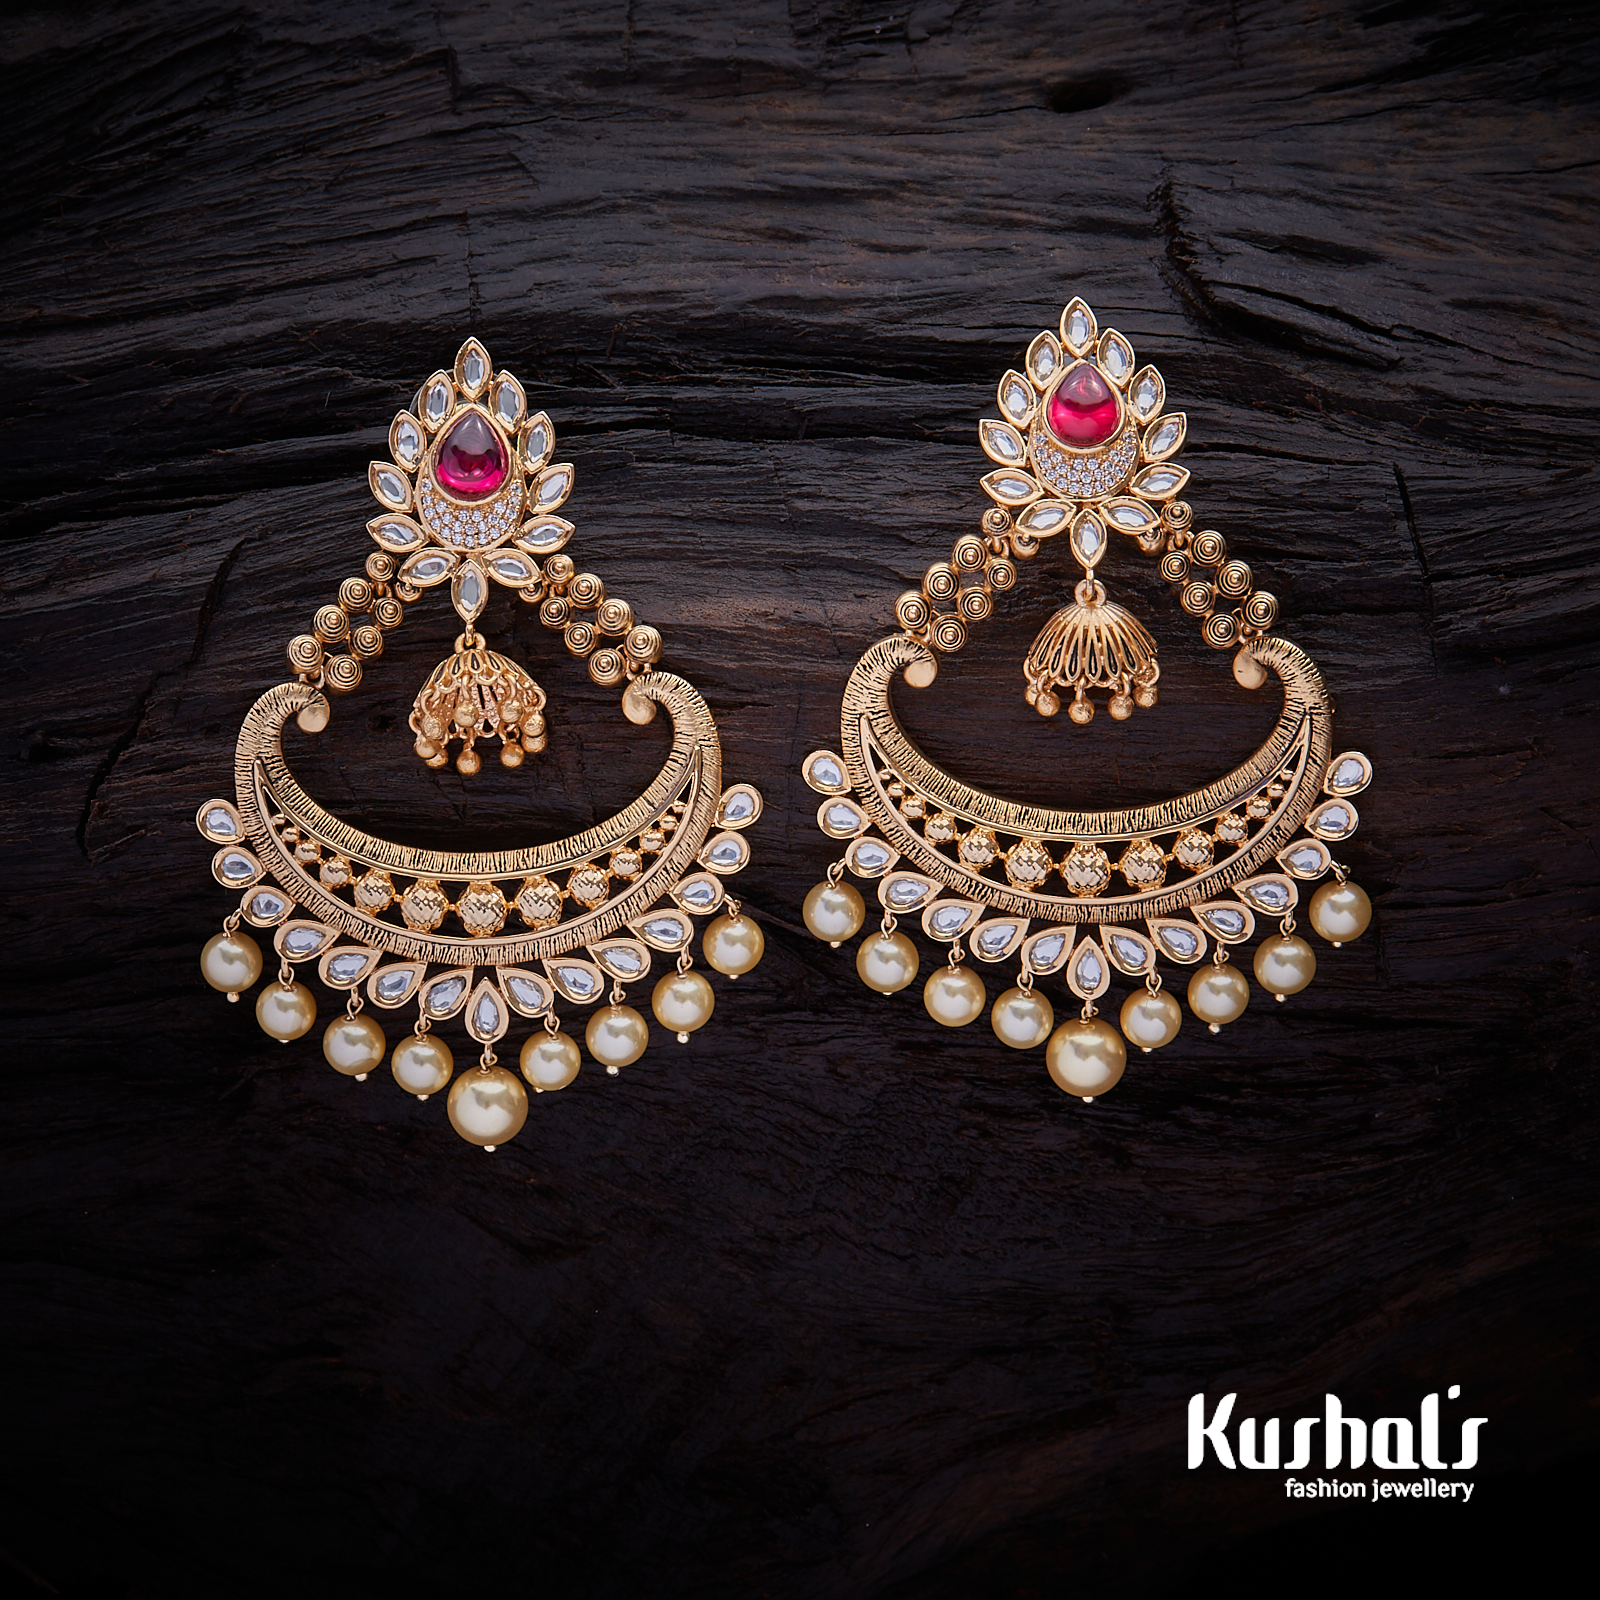 6d7d814416220a Trendy Design CZ #Zircon #earrings studded with White stones, plated with  #gold Polish.#kushalfashionjewellery